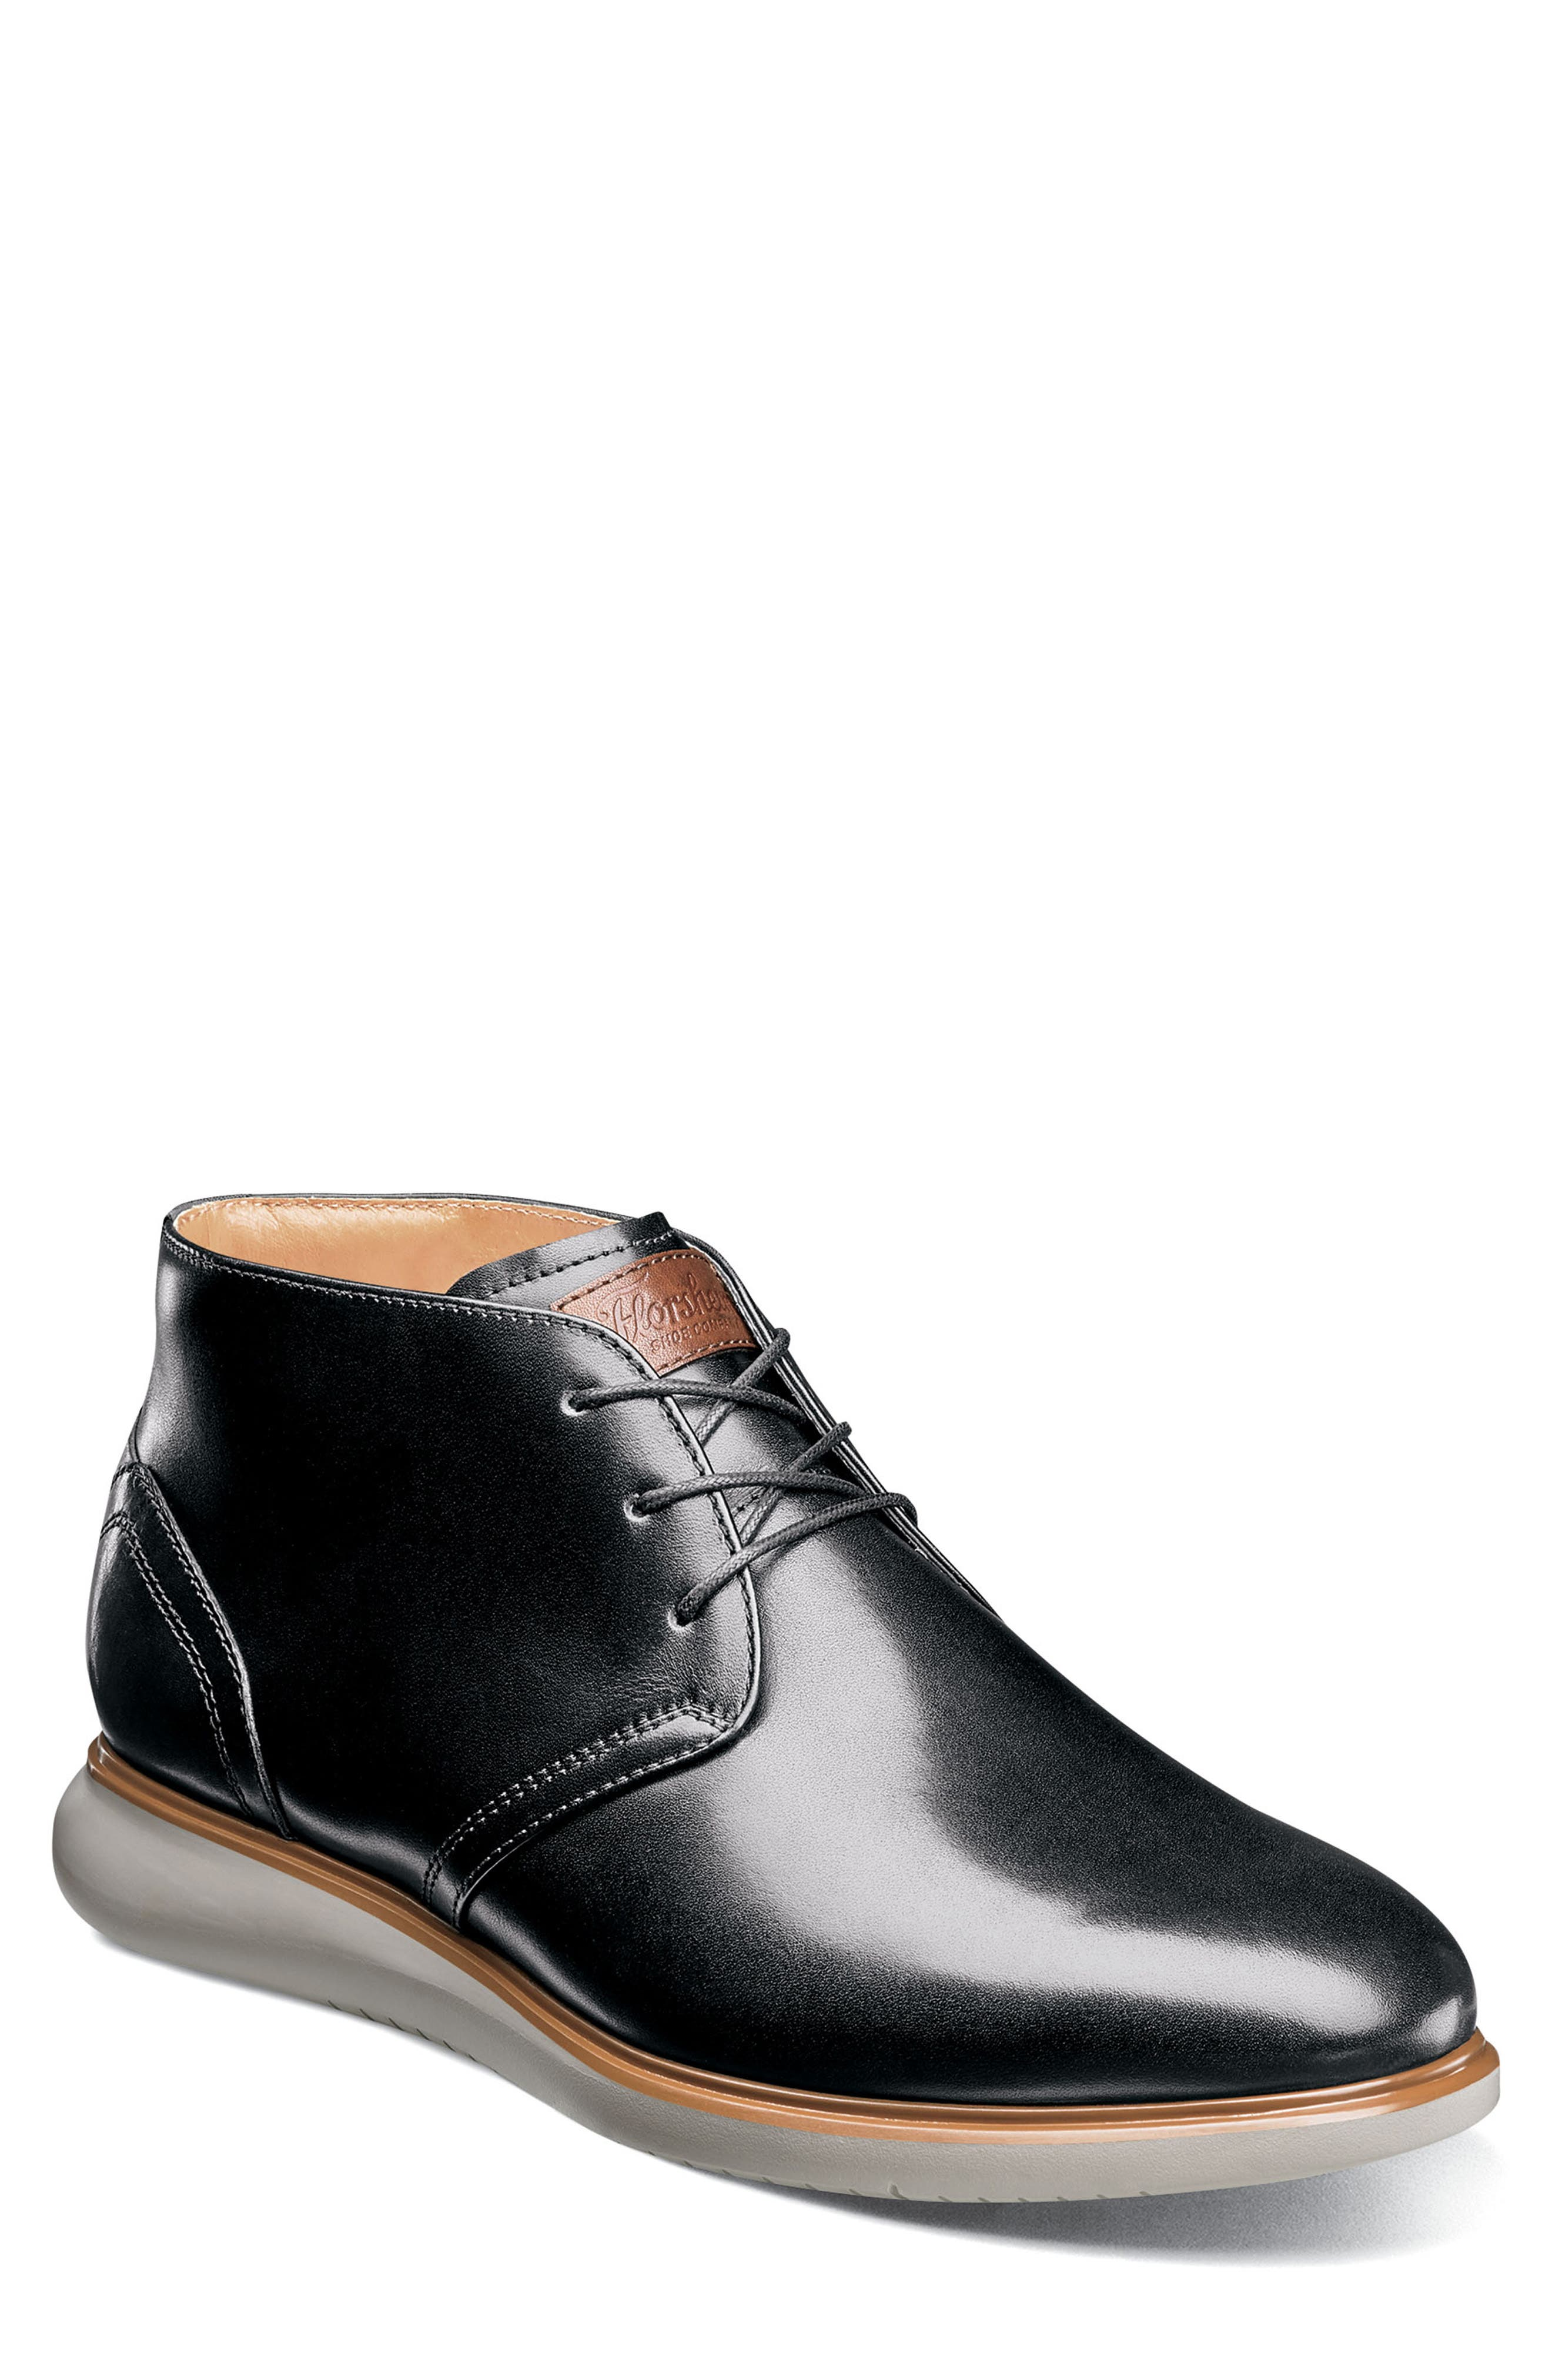 FLORSHEIM Fuel Chukka Boot, Main, color, BLACK LEATHER